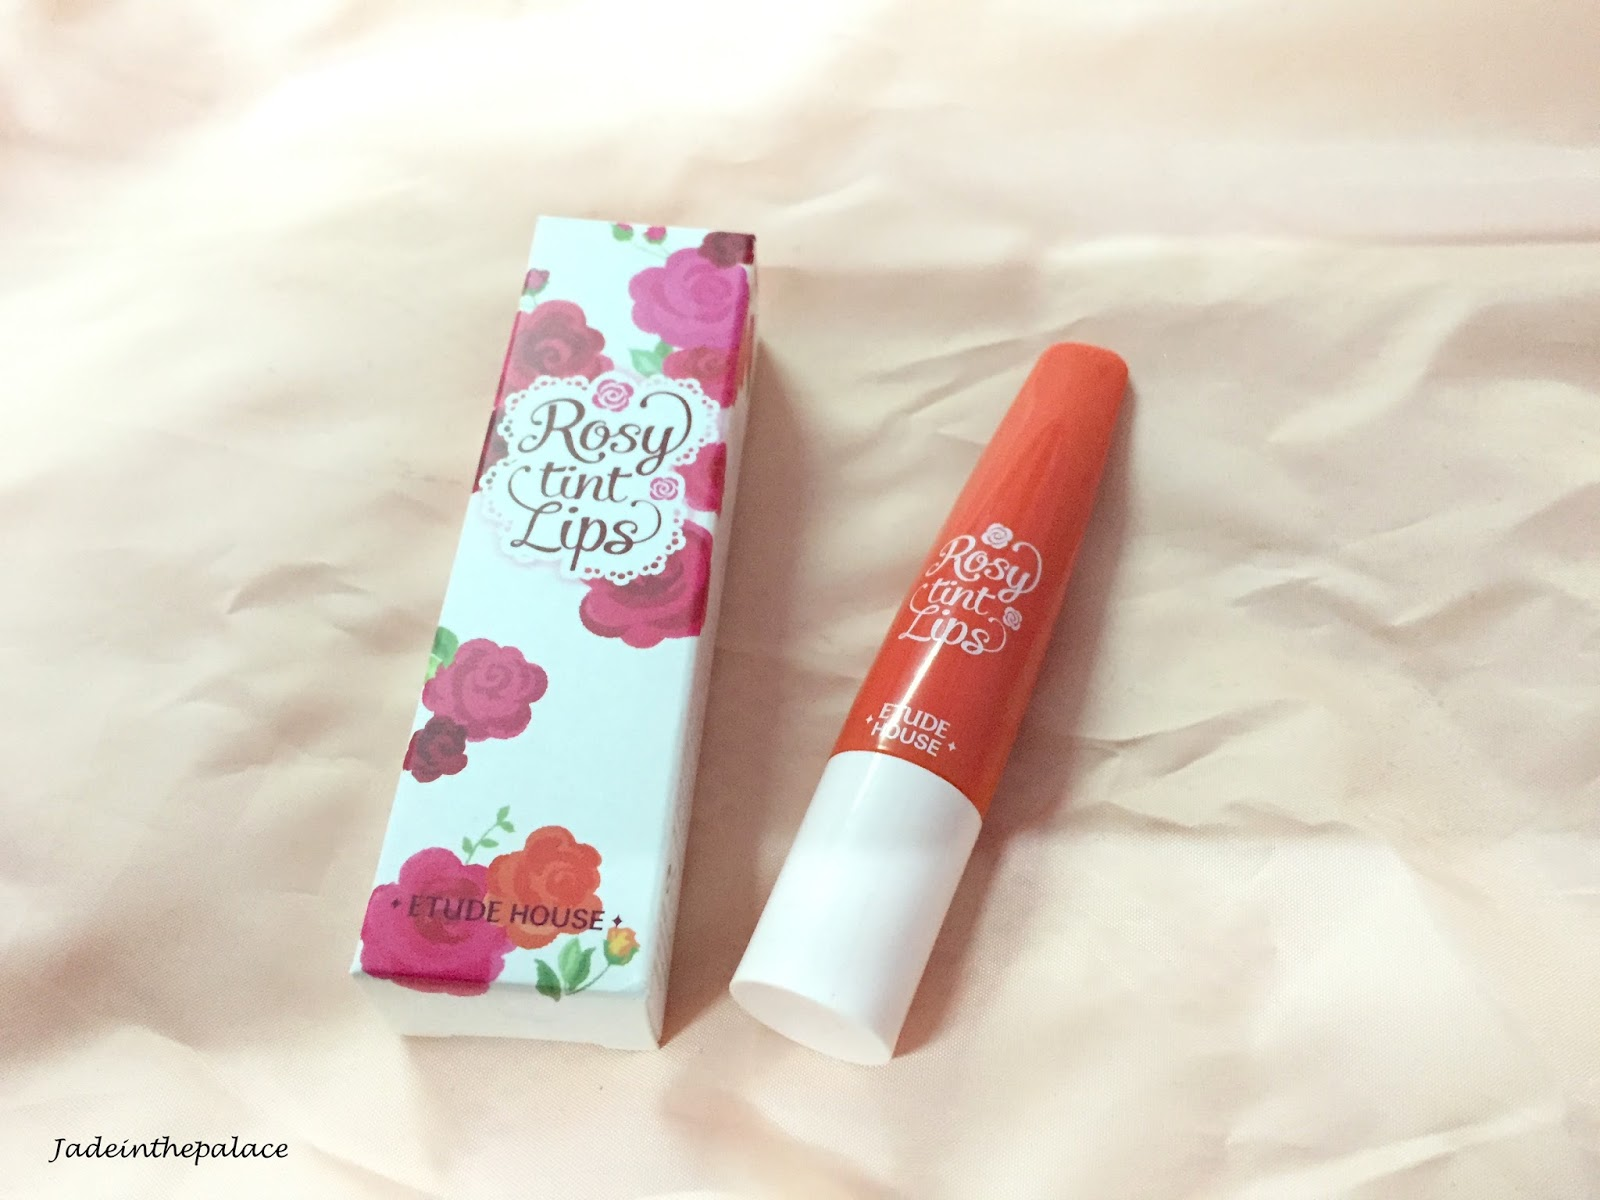 Jade in The Palace: Etude House Rosy Tint Lips